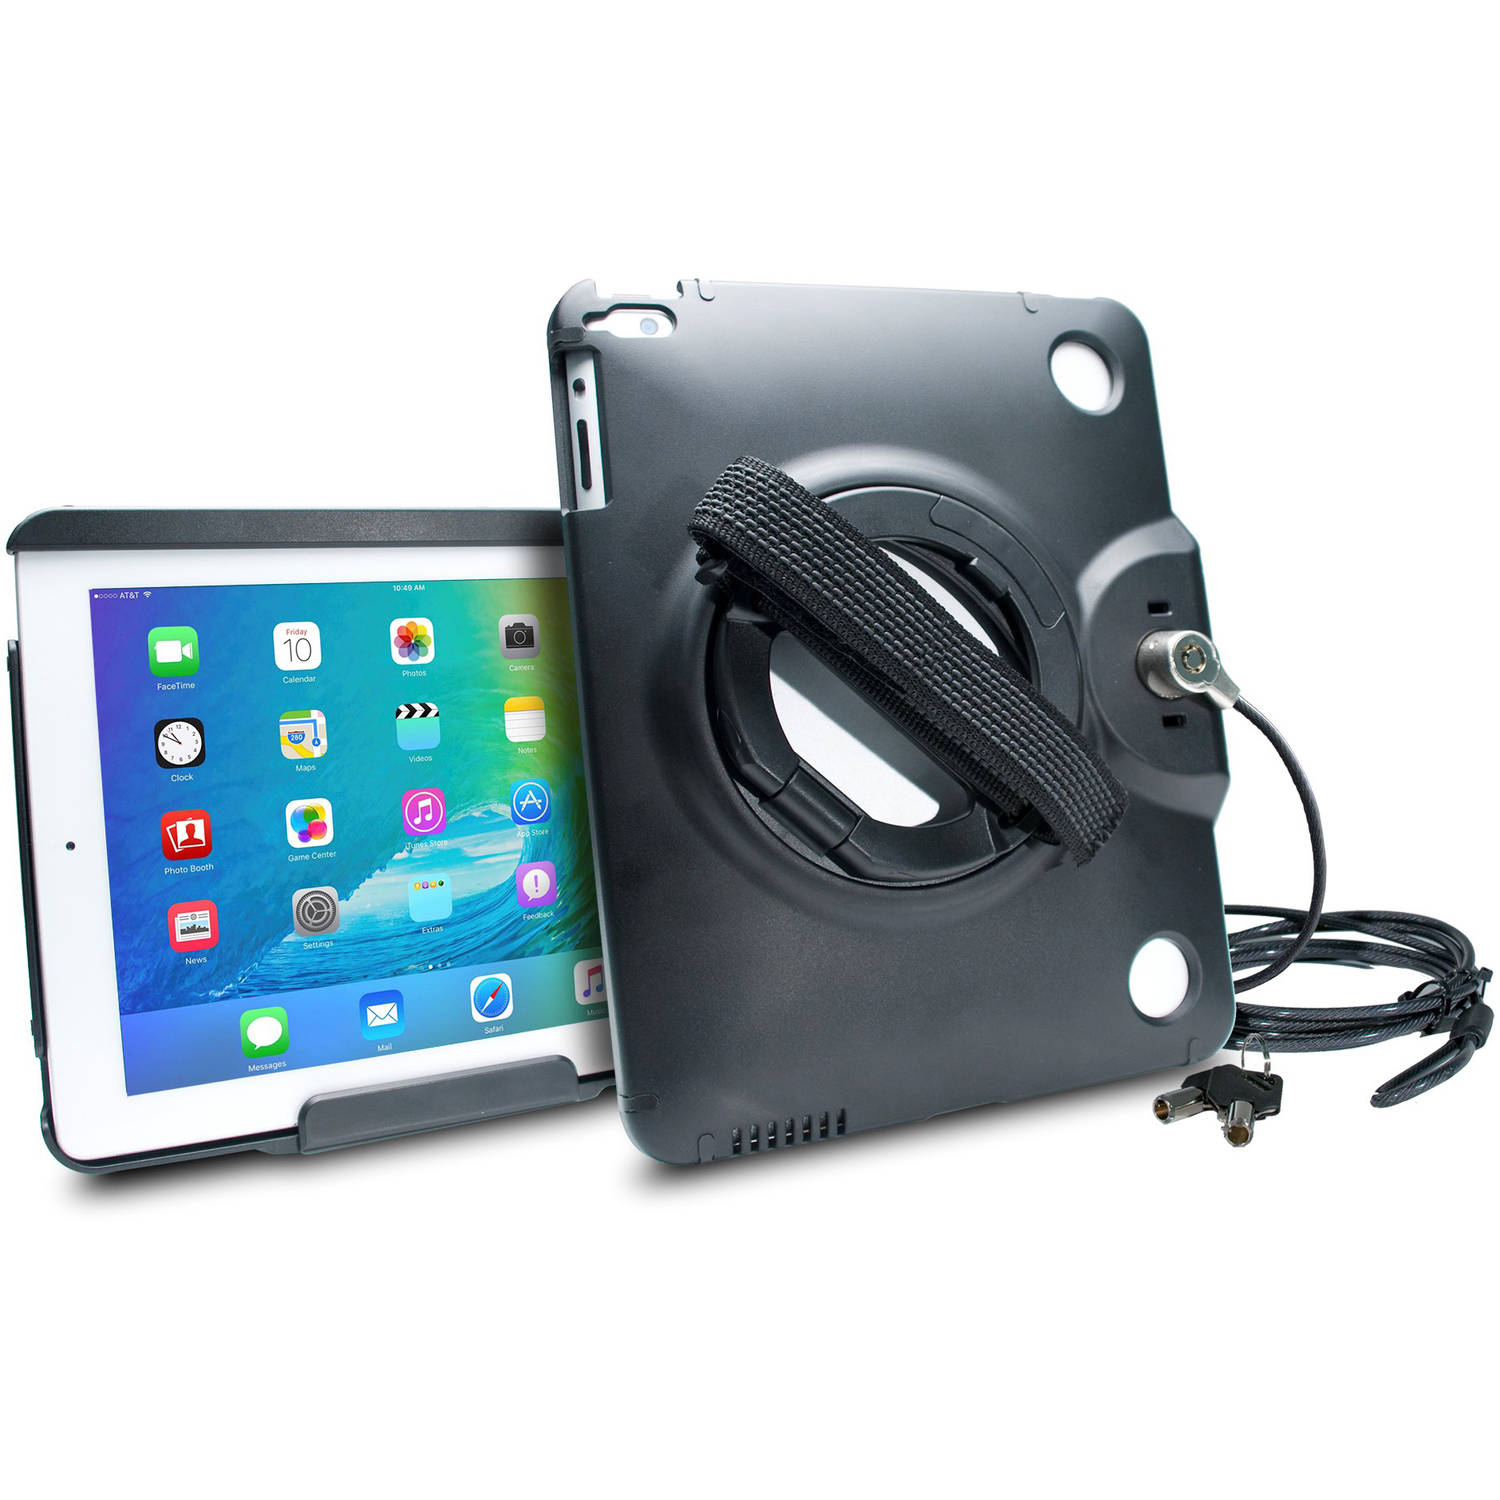 CTA Digital Anti-Theft Case with Built-in Grip Stand for Apple iPad, iPAd Air/Air 2